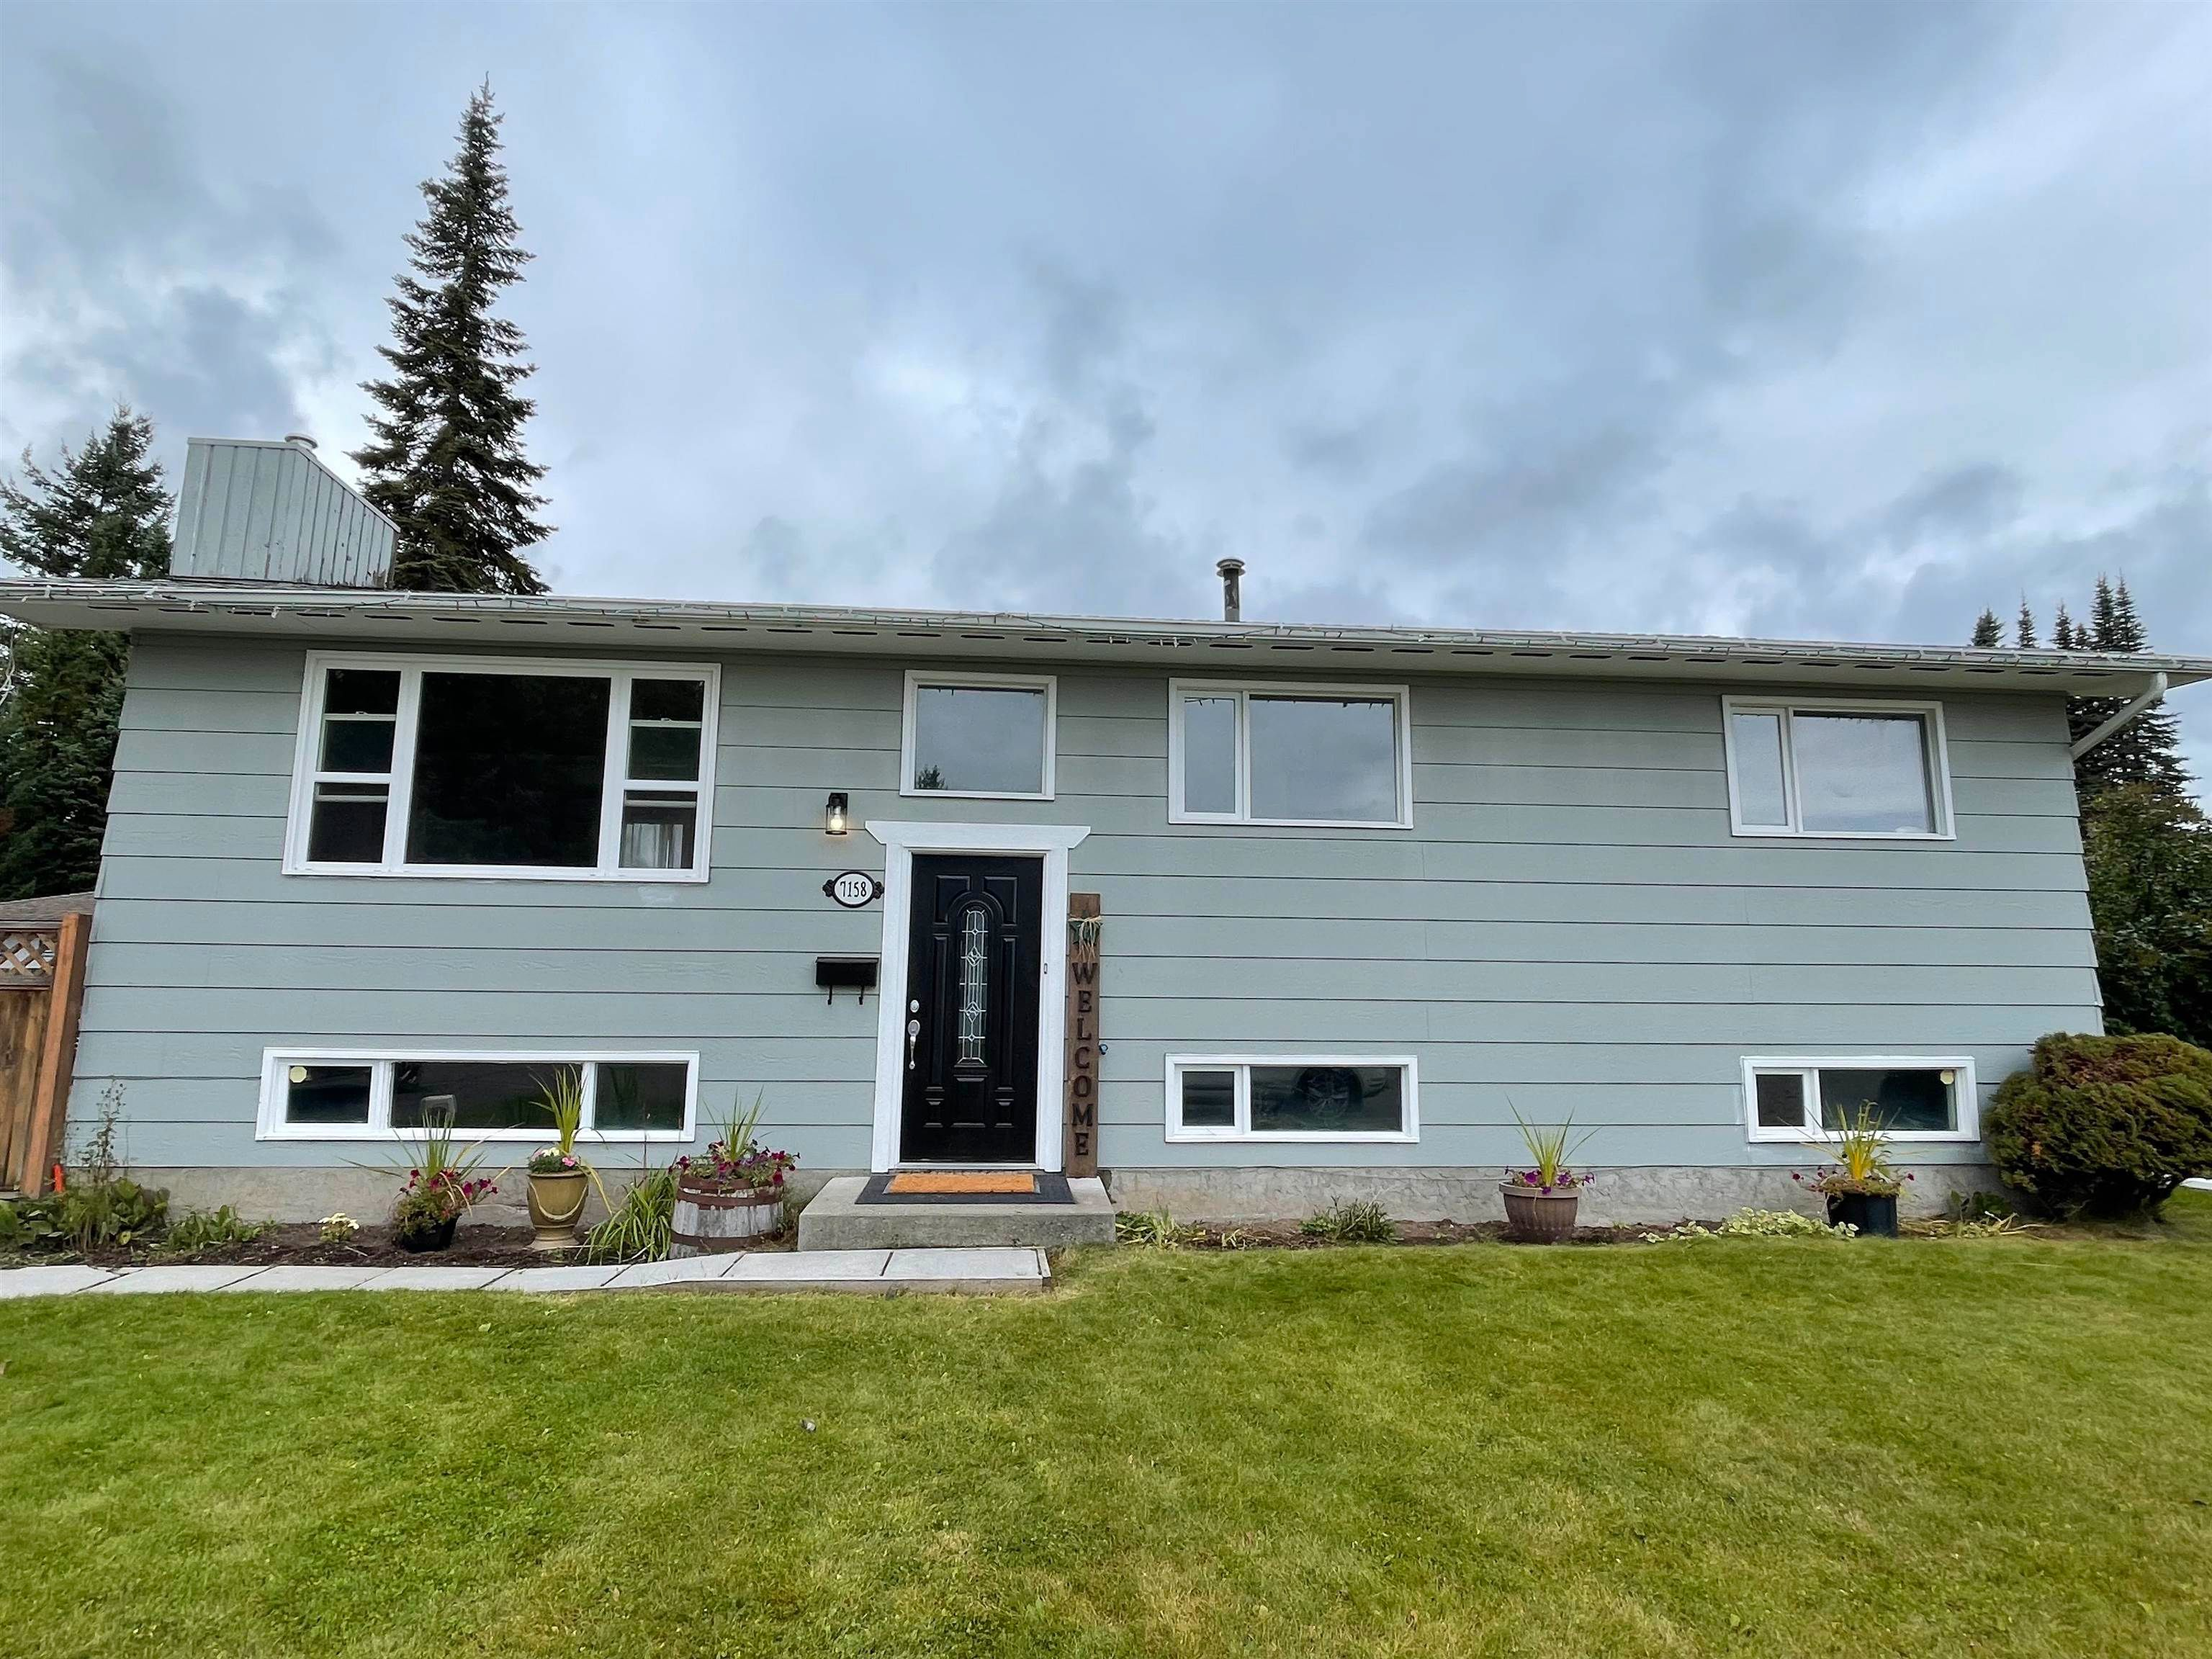 Main Photo: 7158 GUELPH Crescent in Prince George: Lower College House for sale (PG City South (Zone 74))  : MLS®# R2616640